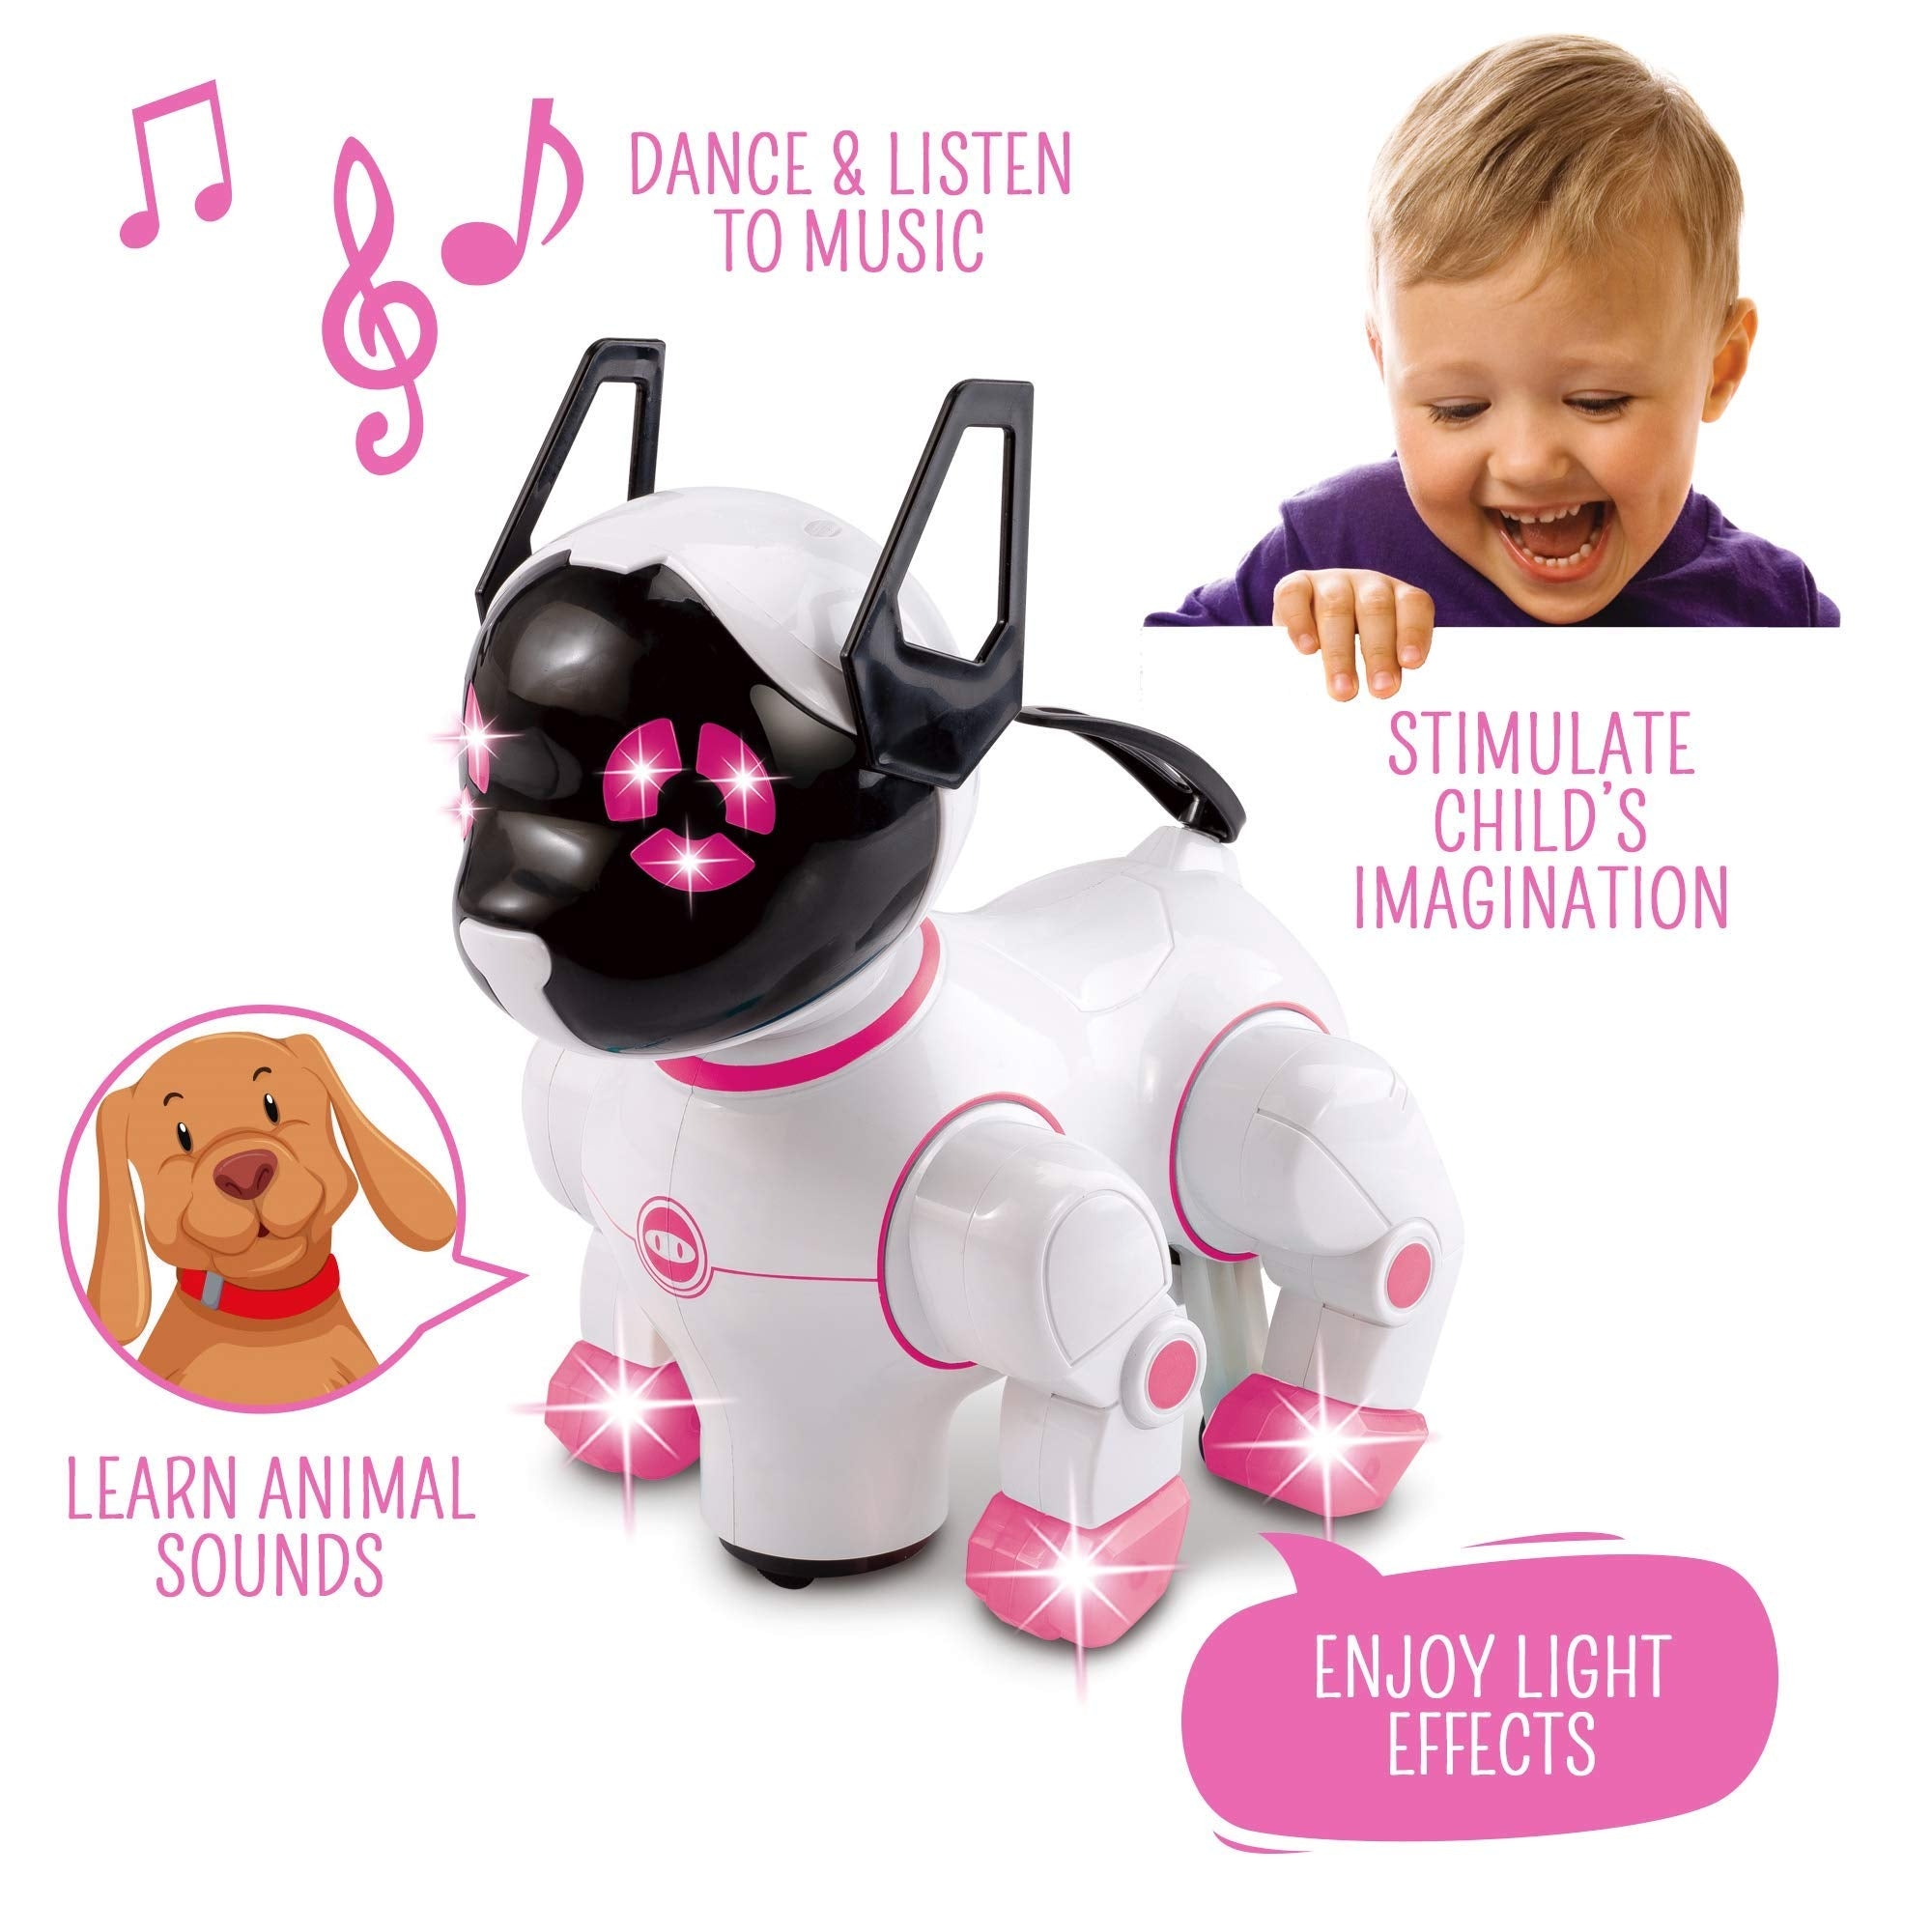 Bambiya Pet Robot Dog for Kids - Interactive Kids Robot Walks, Shakes Its Head, Wags Tail, Moves Feet and More - Puppy Robot Toy w/ Head and Feet That Light Up - for Curious Children Age 3+ Years - wiihuu